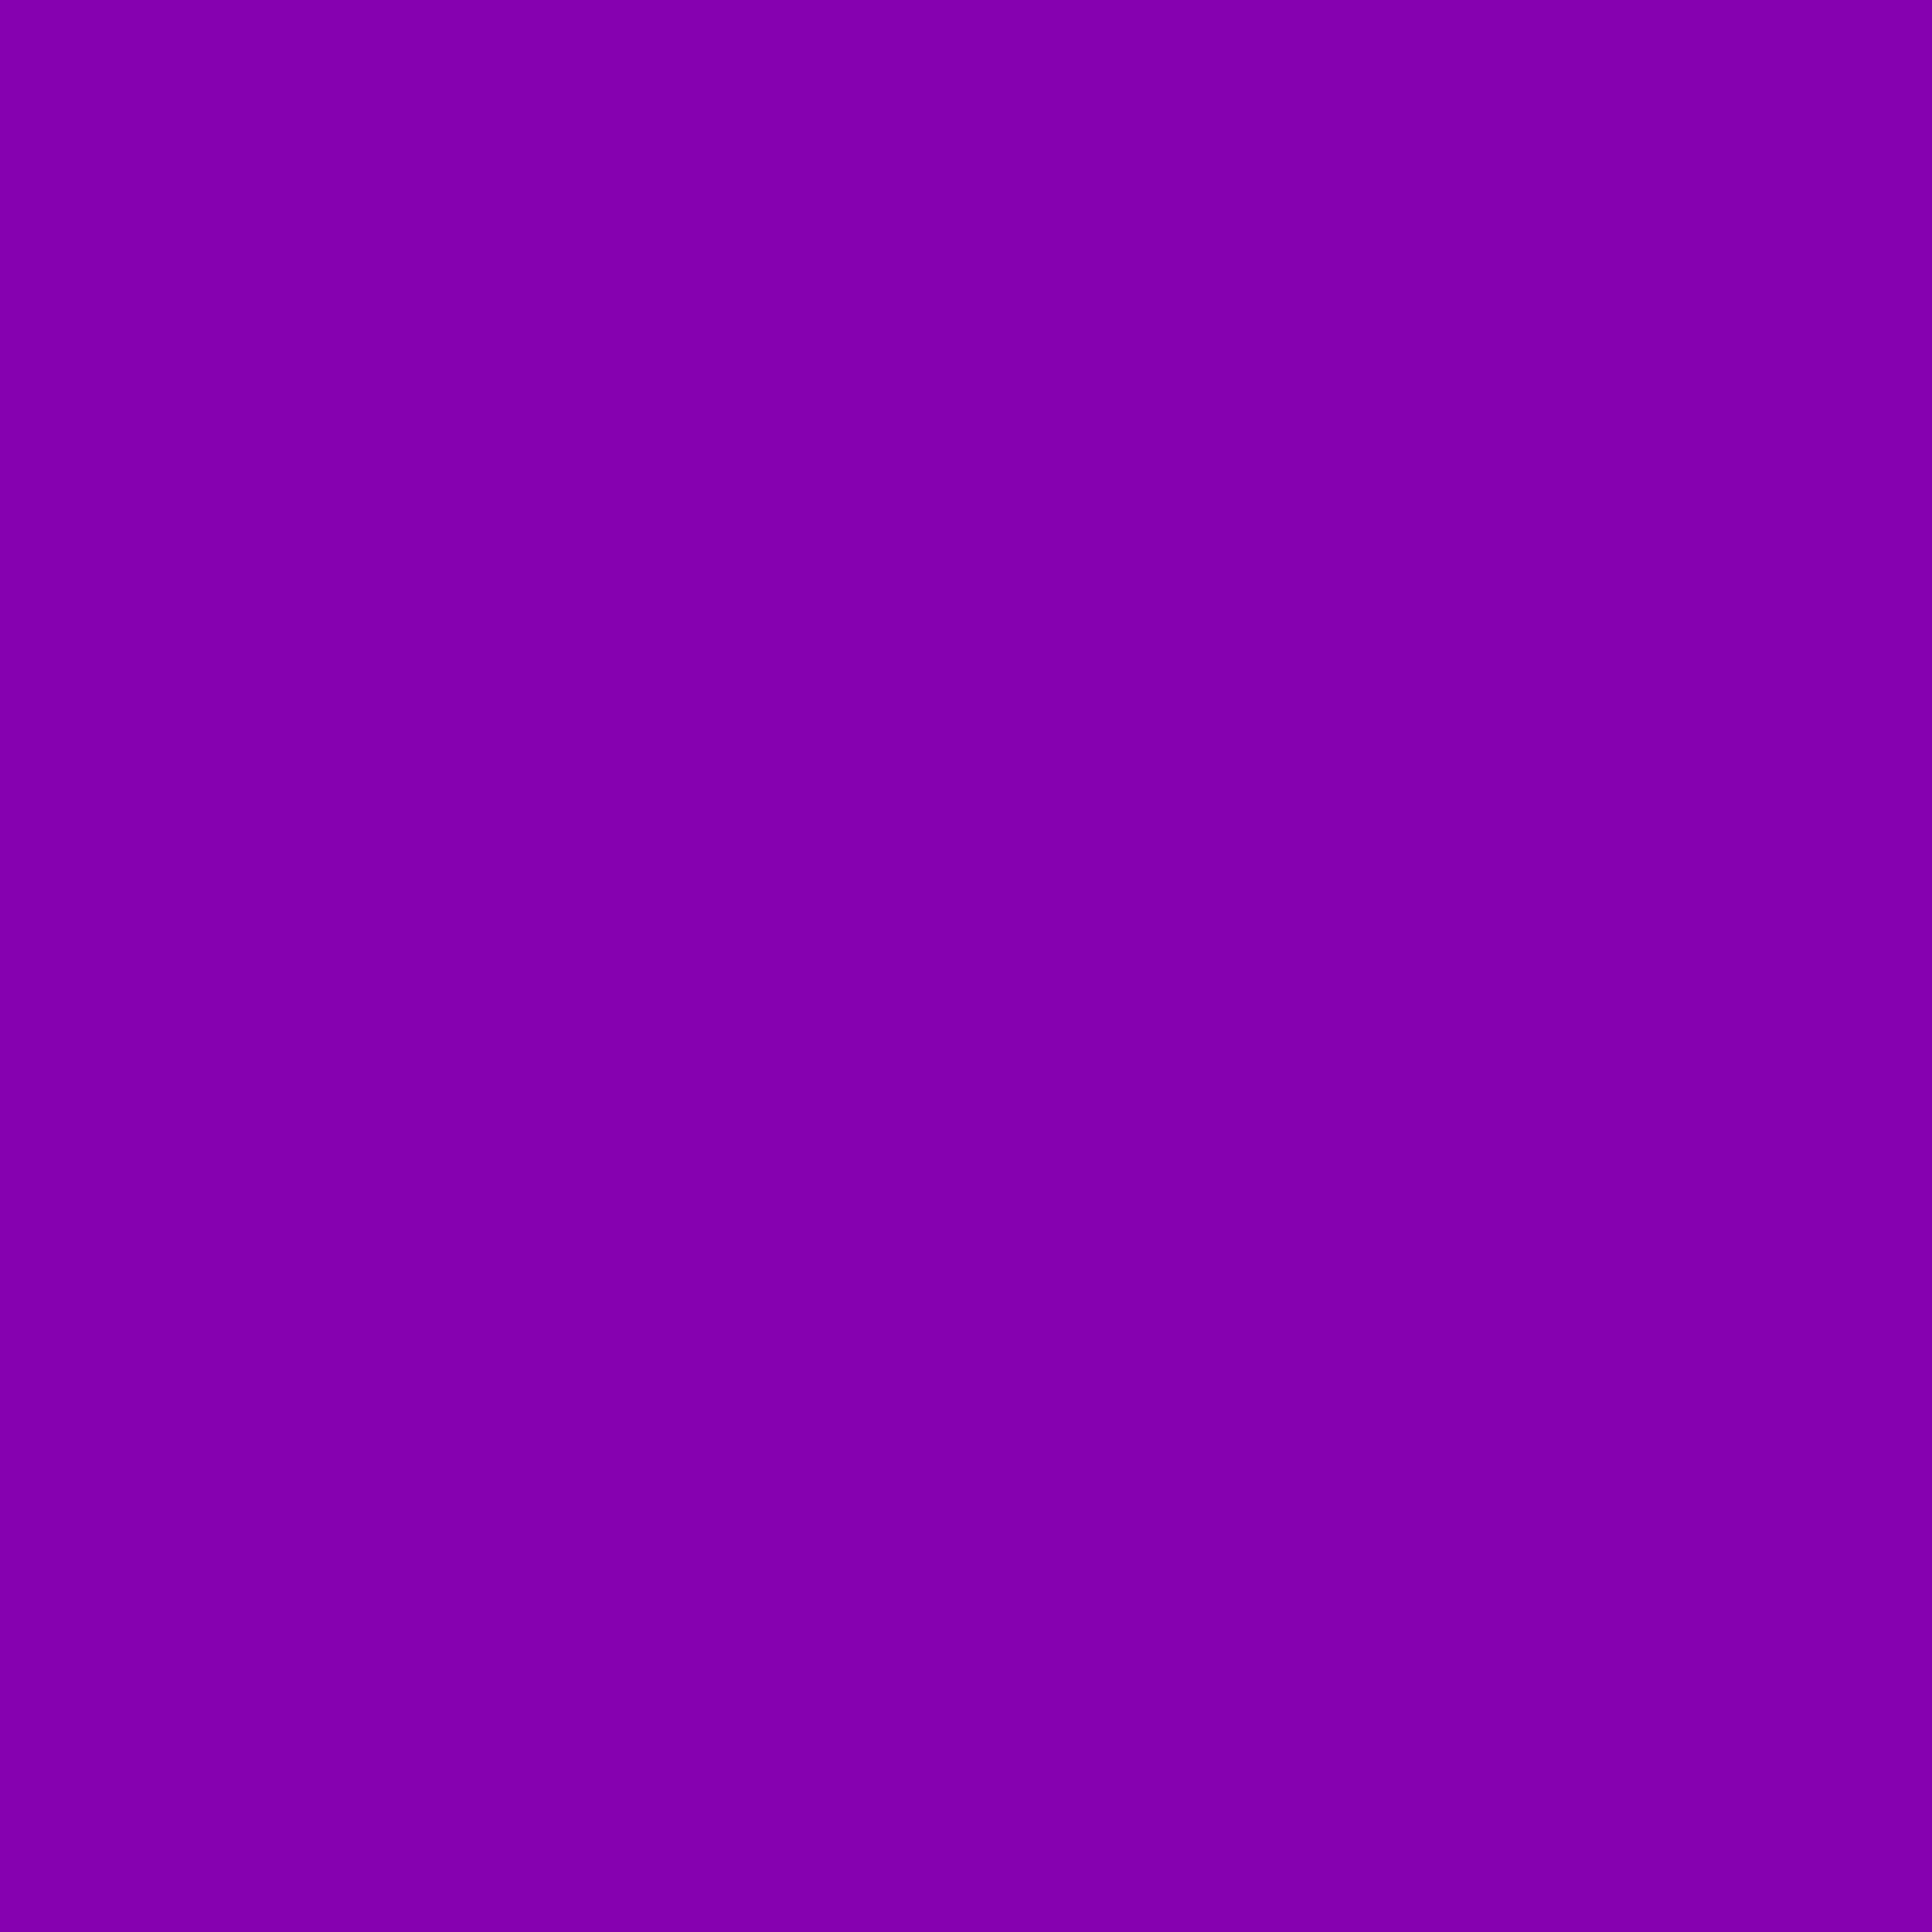 2048x2048 Violet RYB Solid Color Background